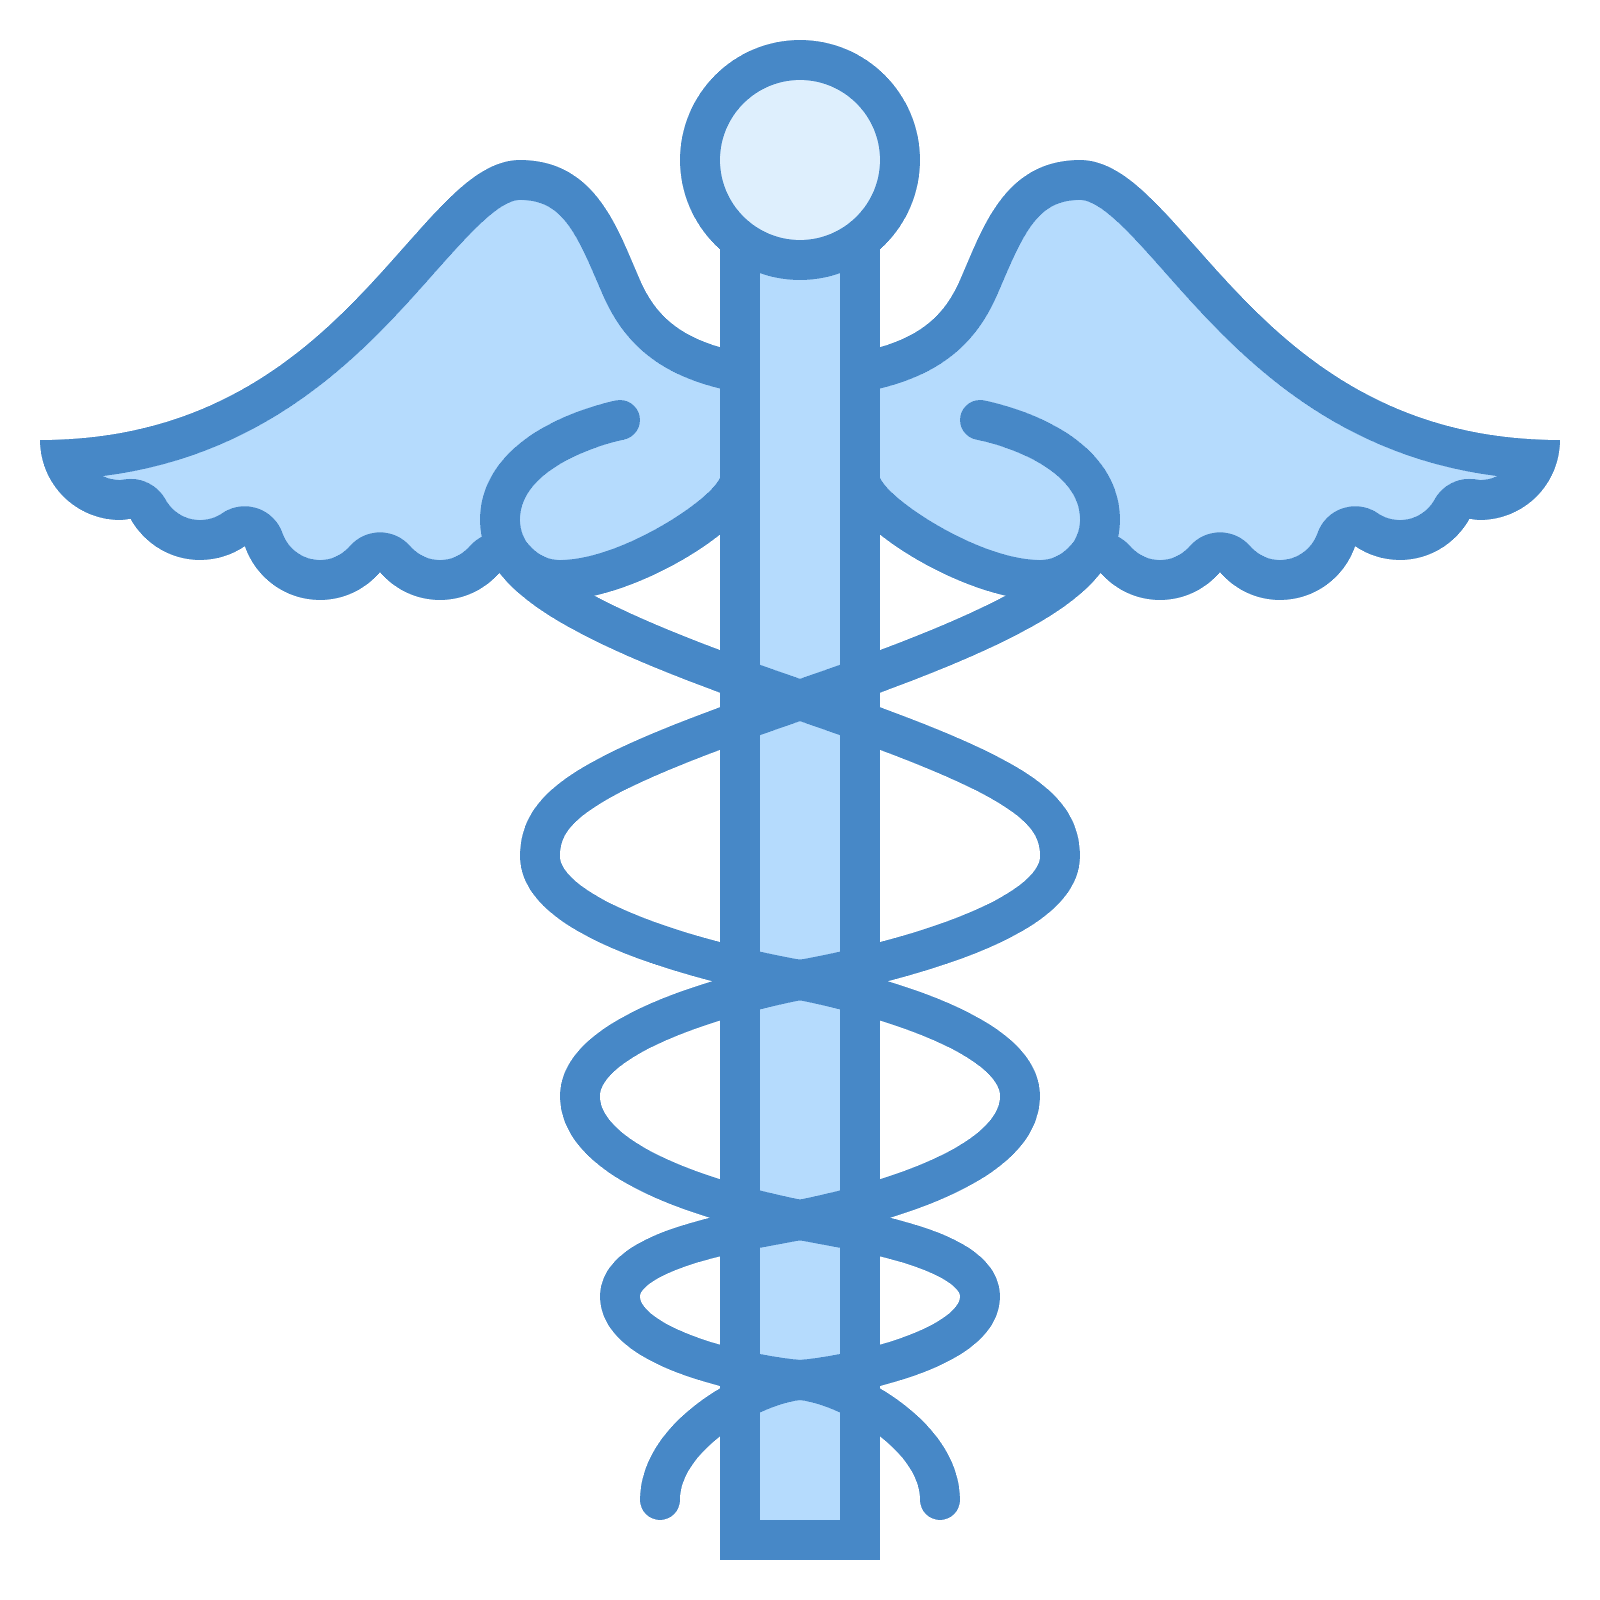 Scepter vector greek. Caduceus icon free download